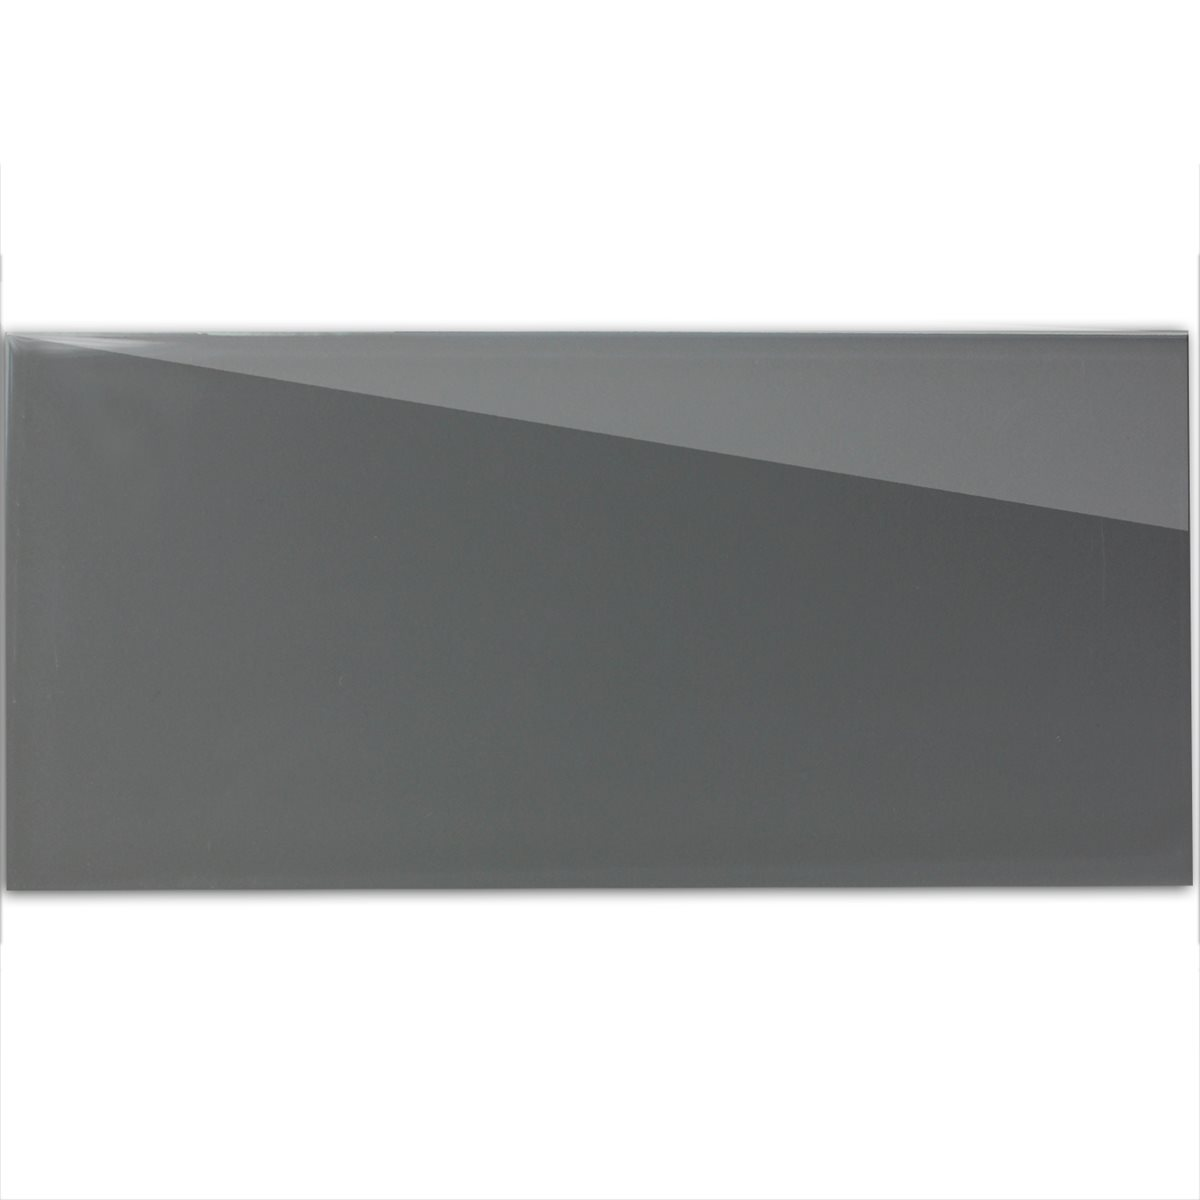 Carrelage Gris Anthracite Brillant Carrelage Gris Anthracite Brillant Finest Carrelage Gris